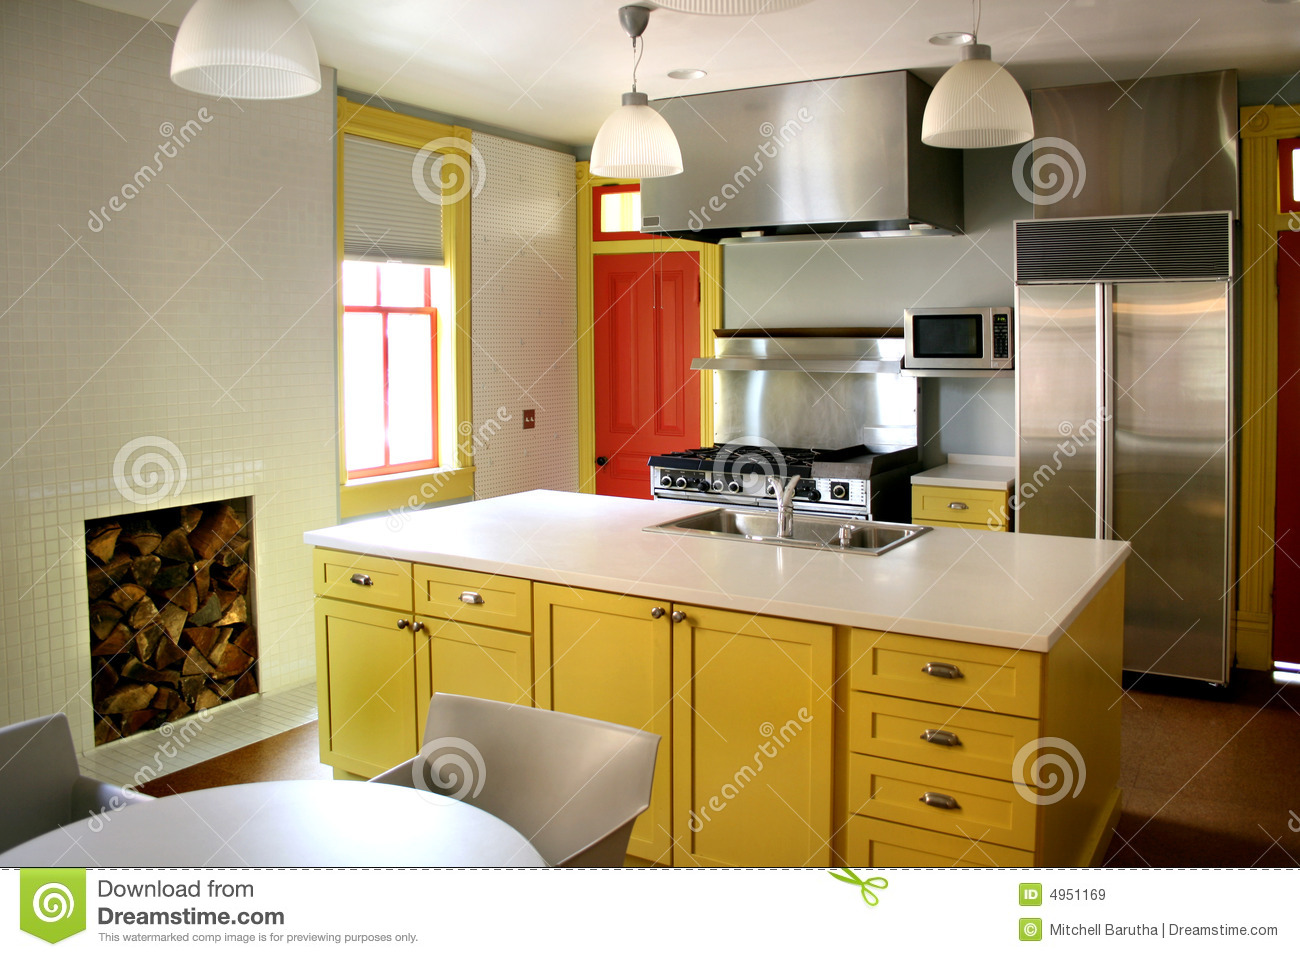 Kitchen yellow wood cabinets stainless stove stock image for Kitchen cabinets yellow